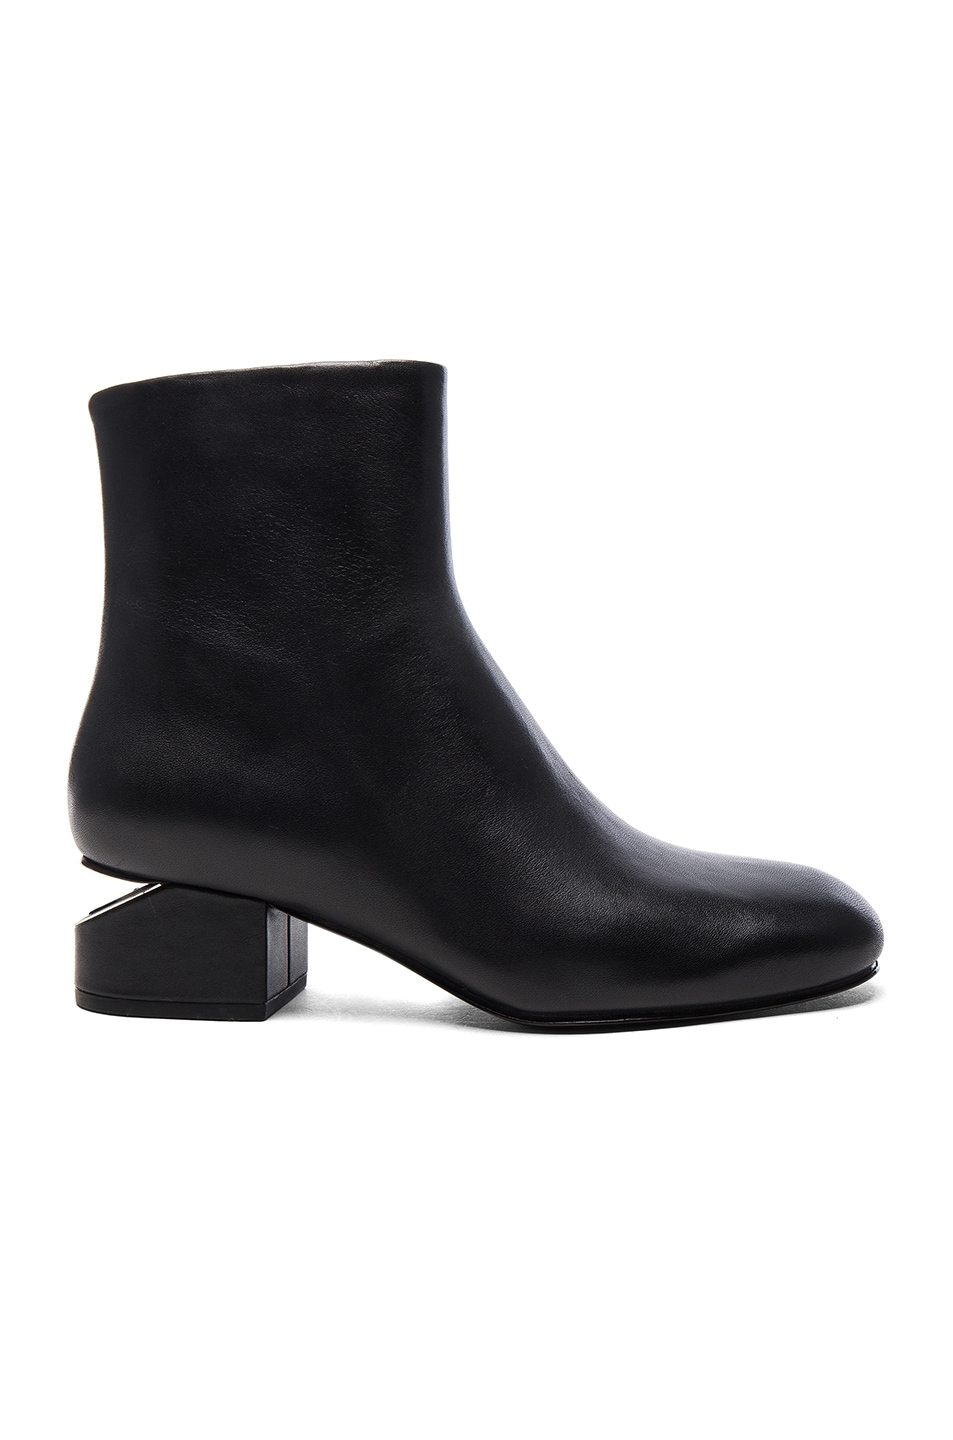 Image 1 of Alexander Wang Leather Kelly Booties in Black